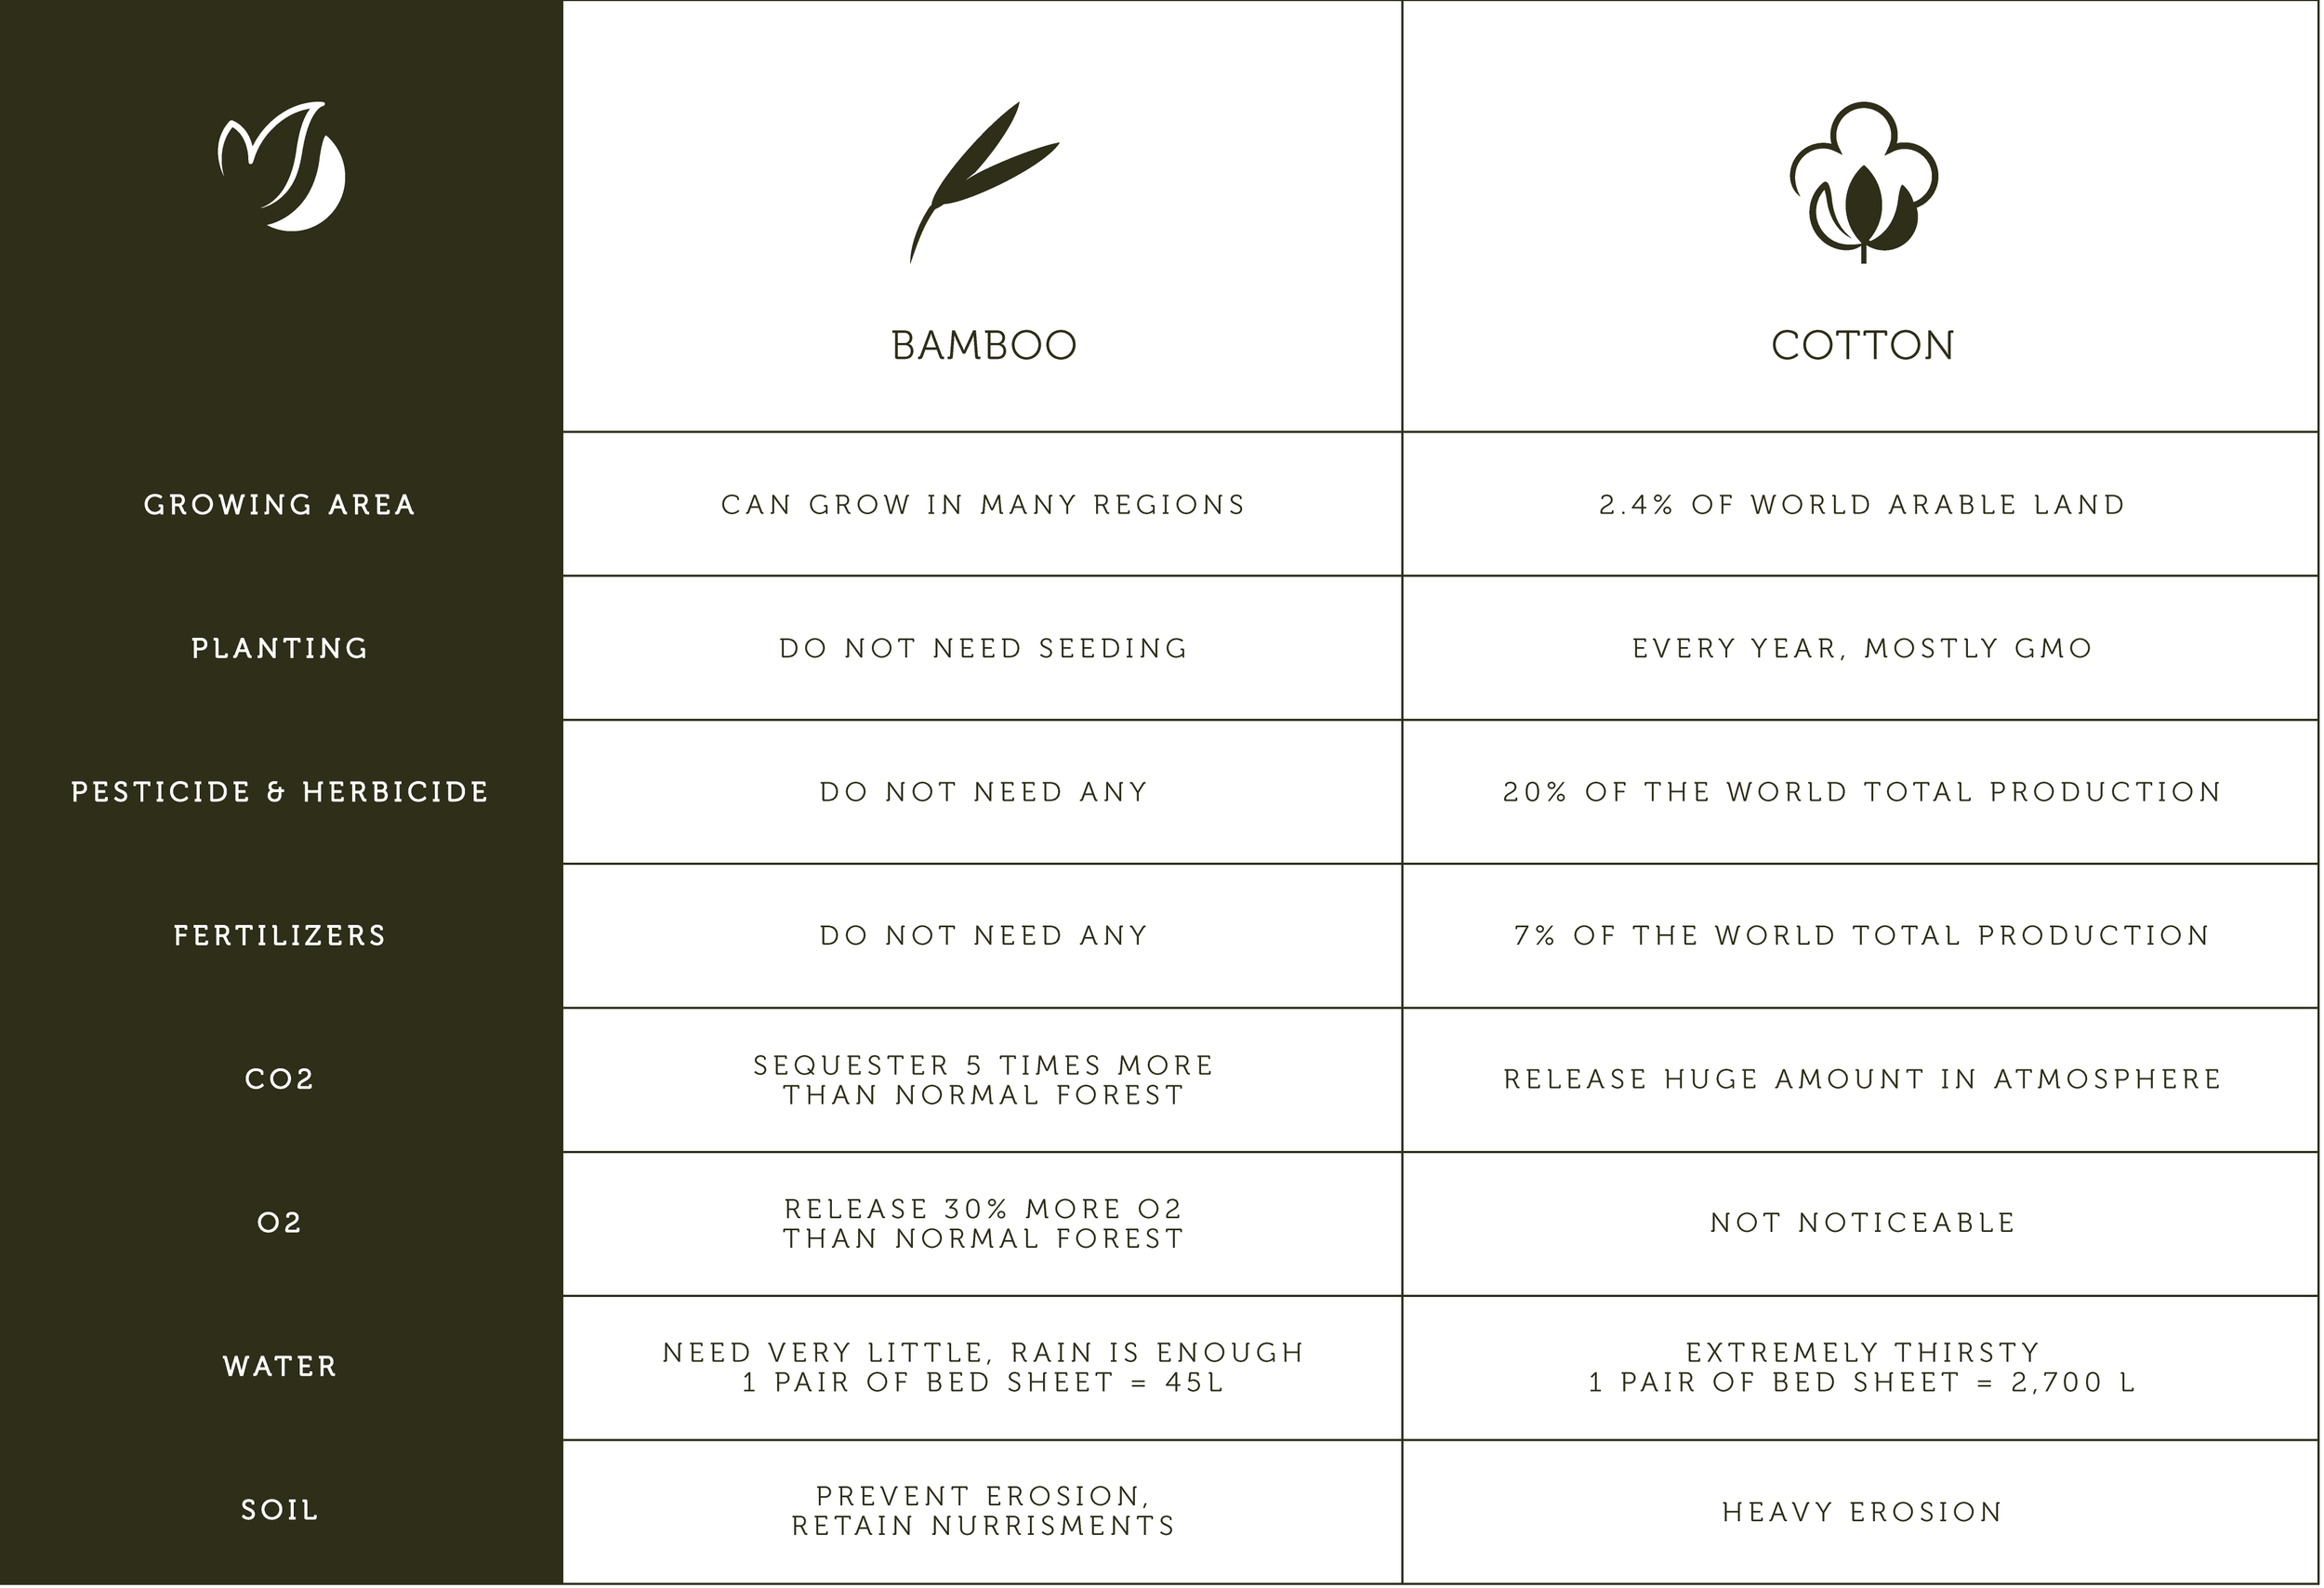 Table Bamboo benefits for you and the planet